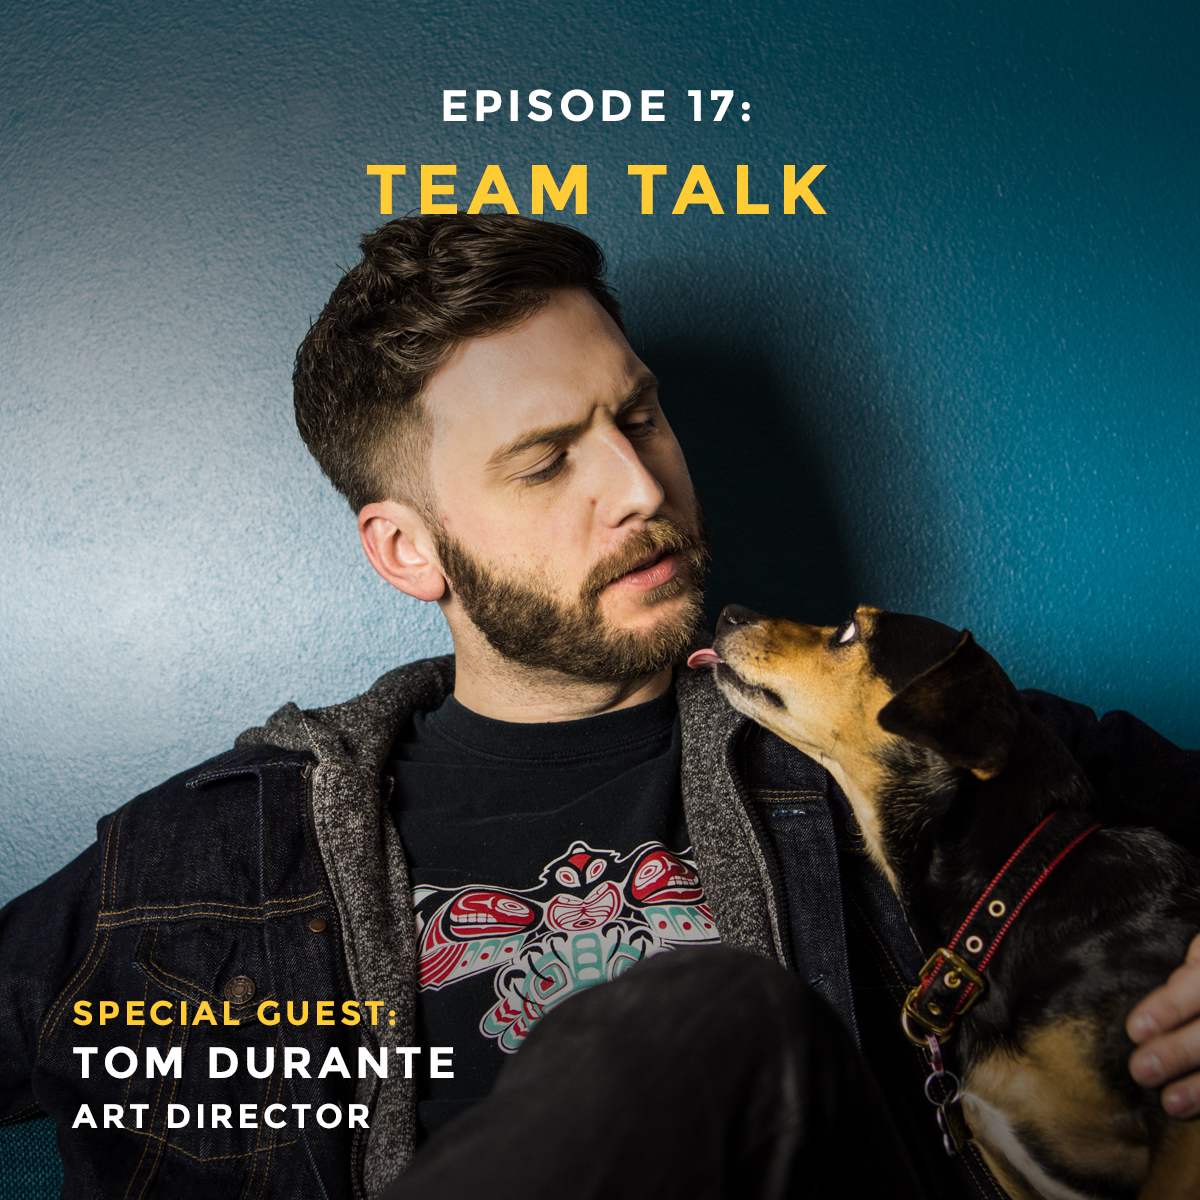 Team Talk episode with Tom Durante art director at iris Worldwide and Vigor